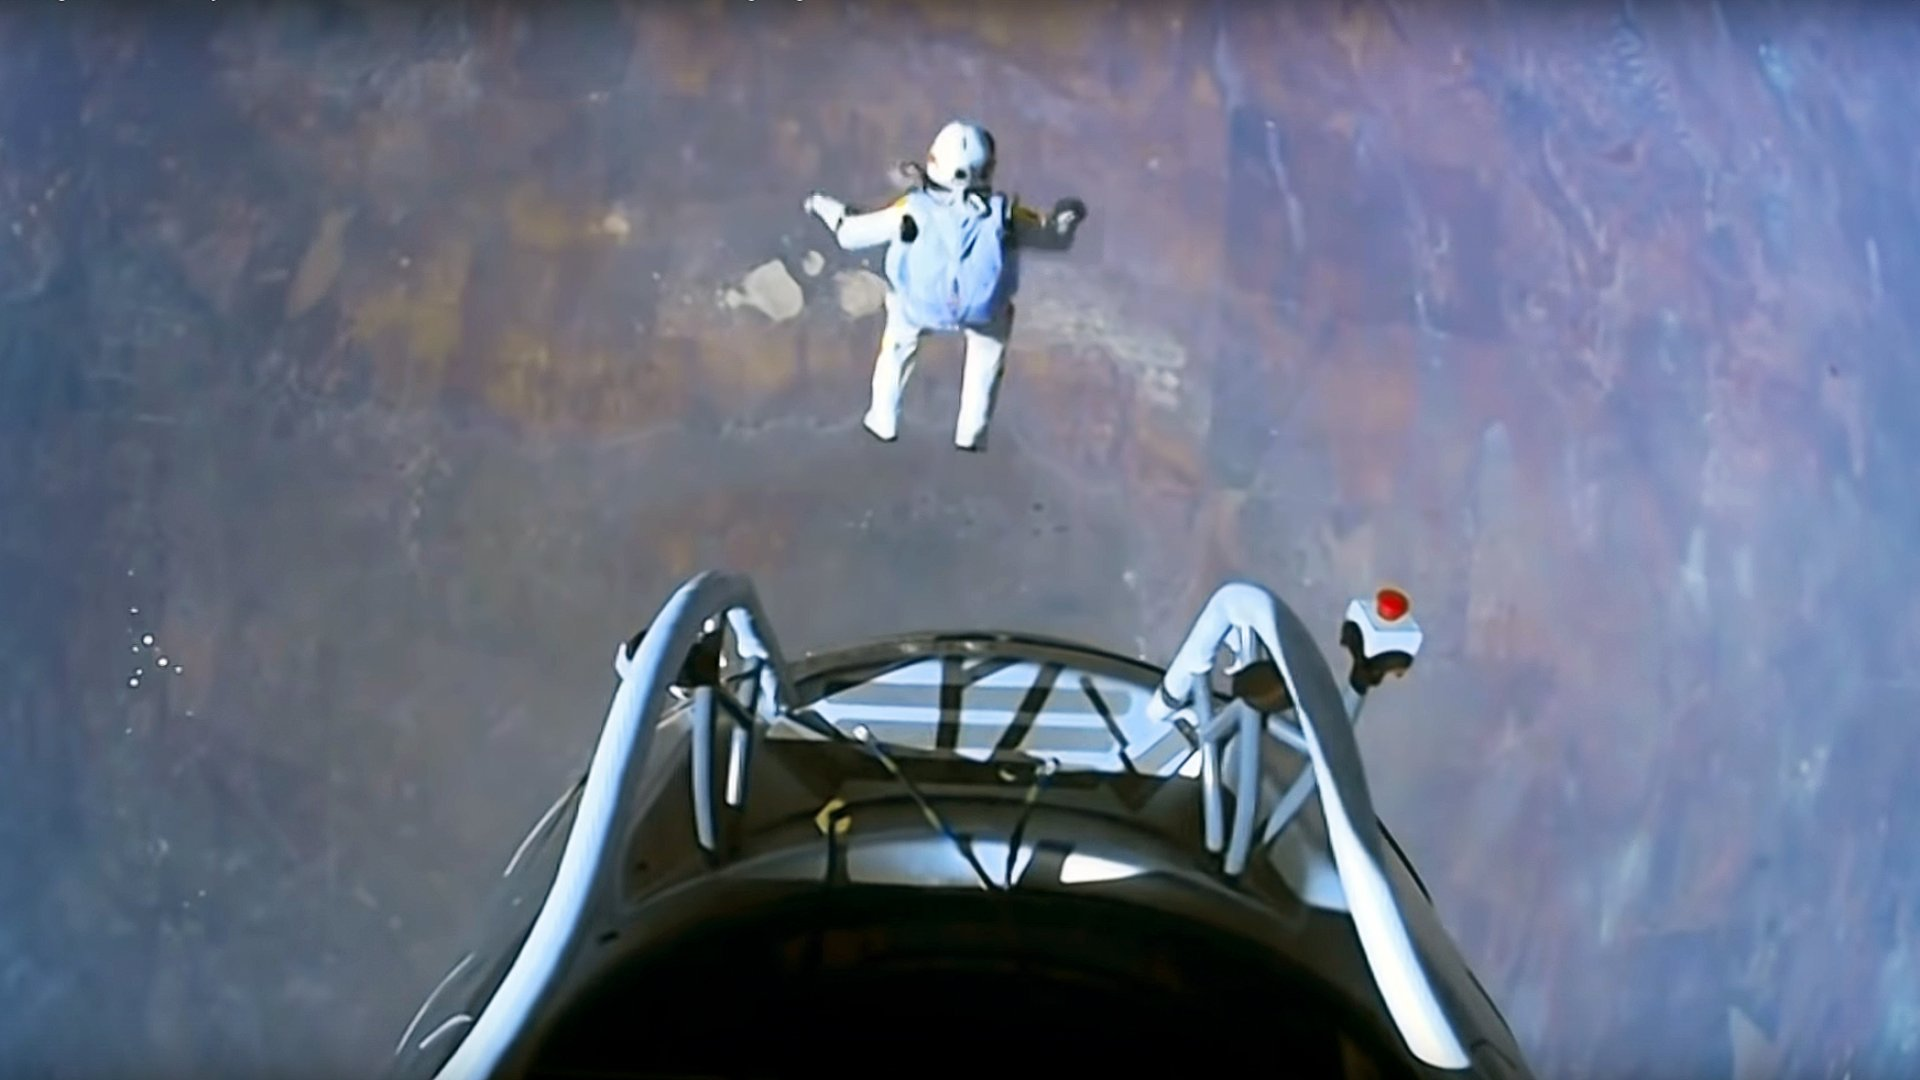 How to Overcome Your Biggest Fear, According to the Guy Who Parachuted to Earth From Space